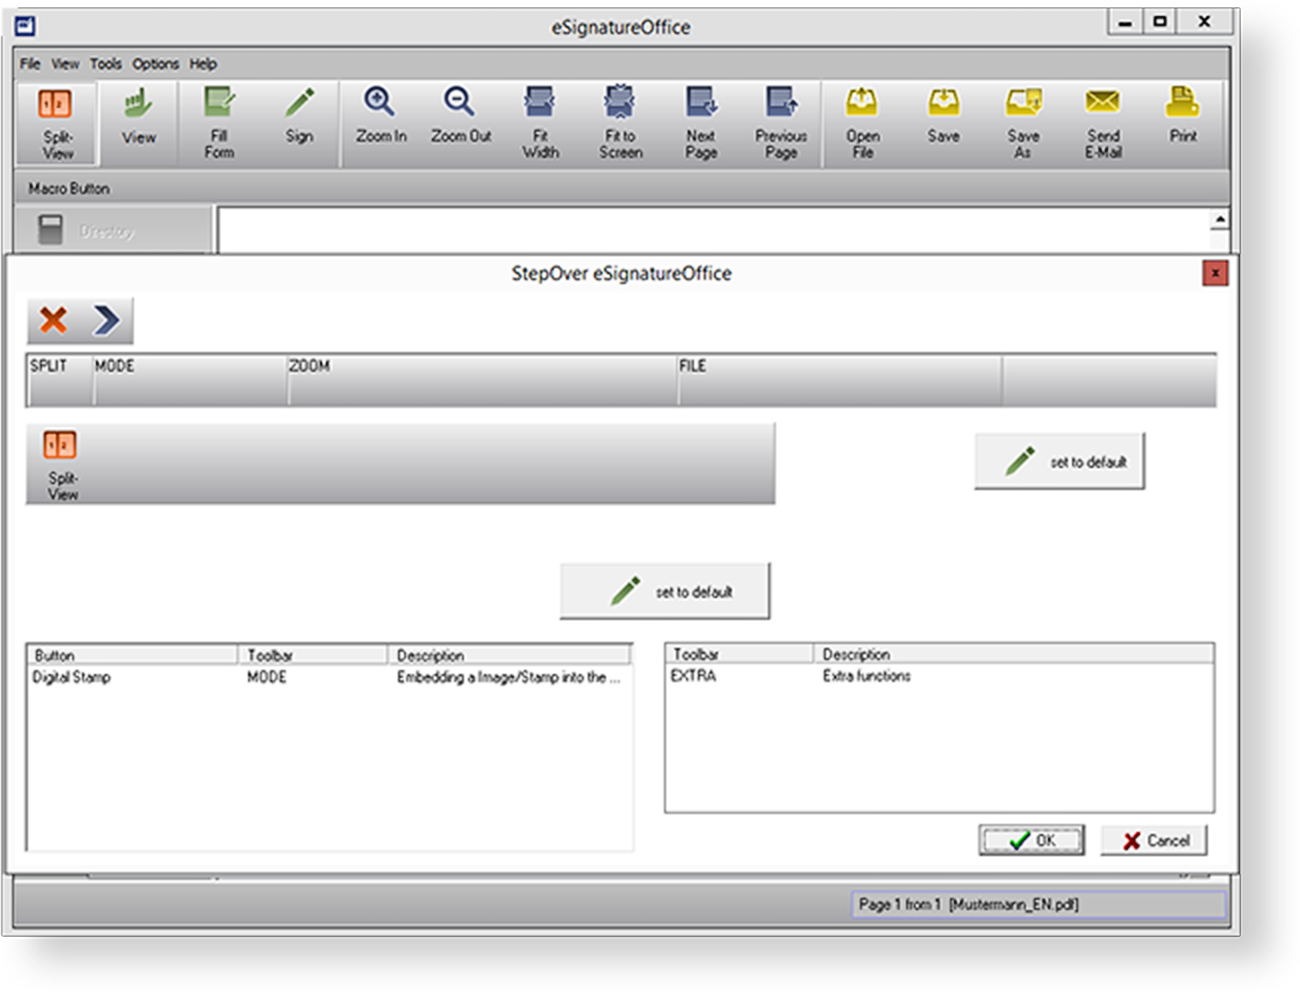 eSignatureOffice-Signature-solution-Signature-software-eSignatureOffice-4